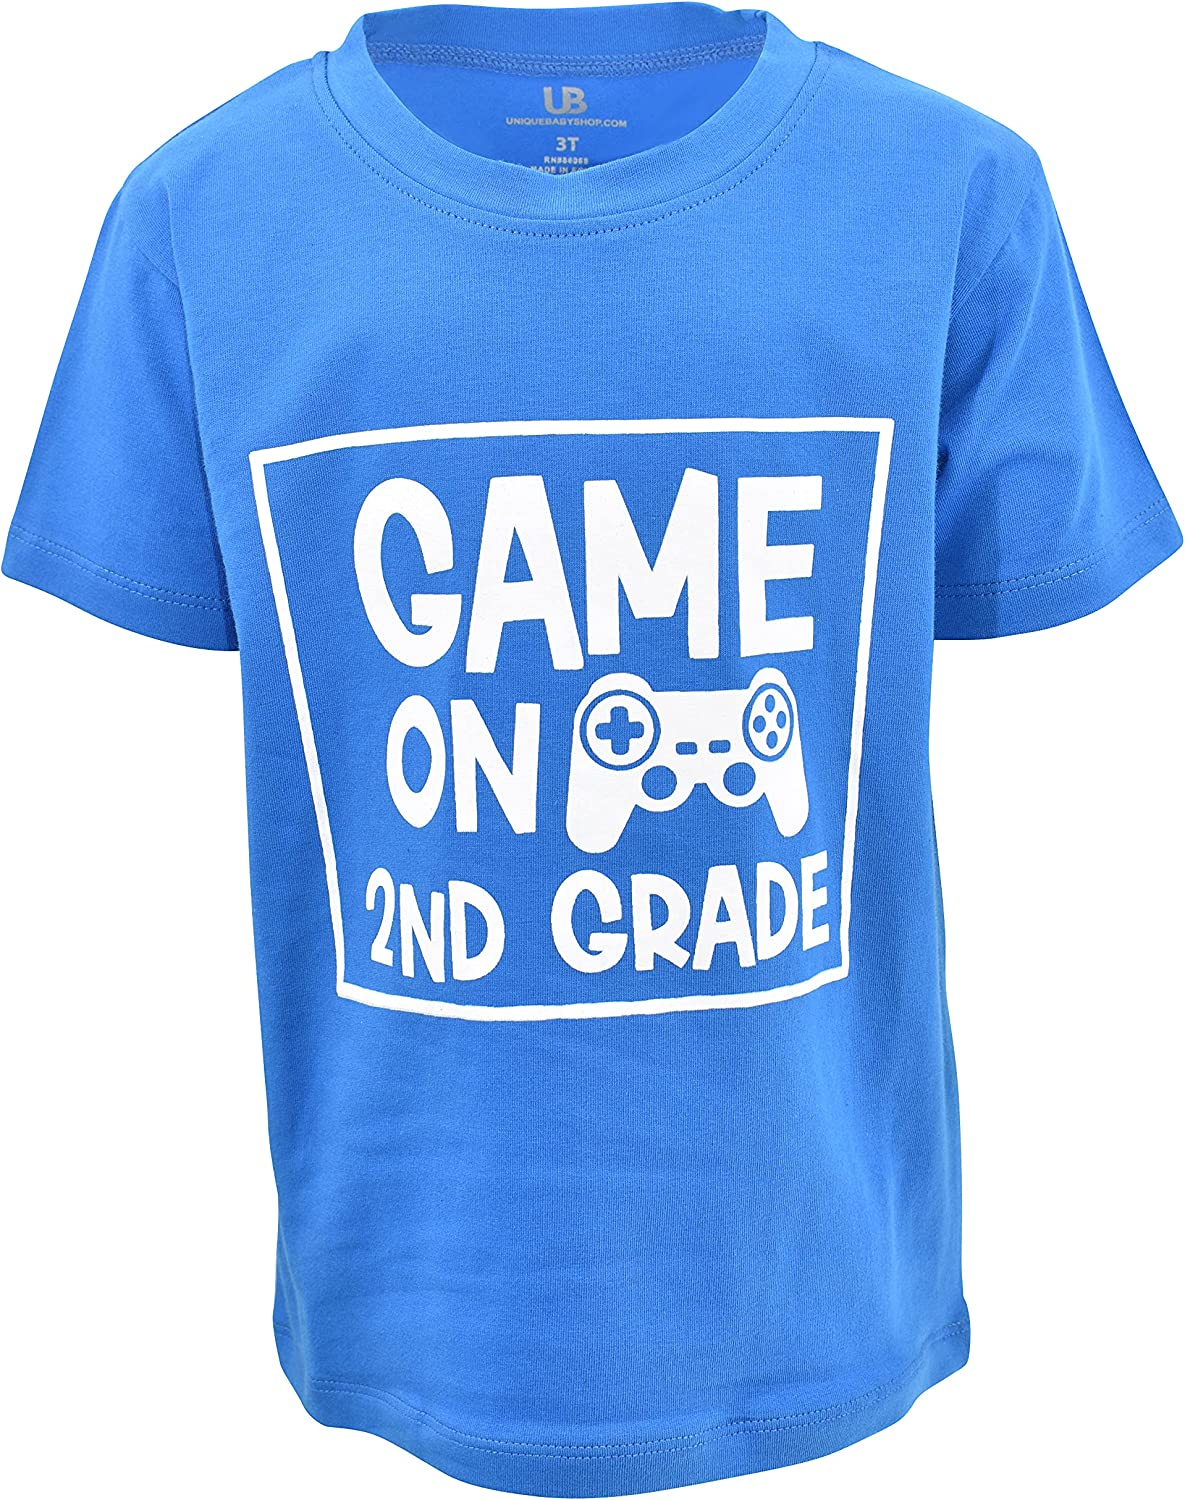 Unique Baby Boys Game On Back to School Gamer Tshirt